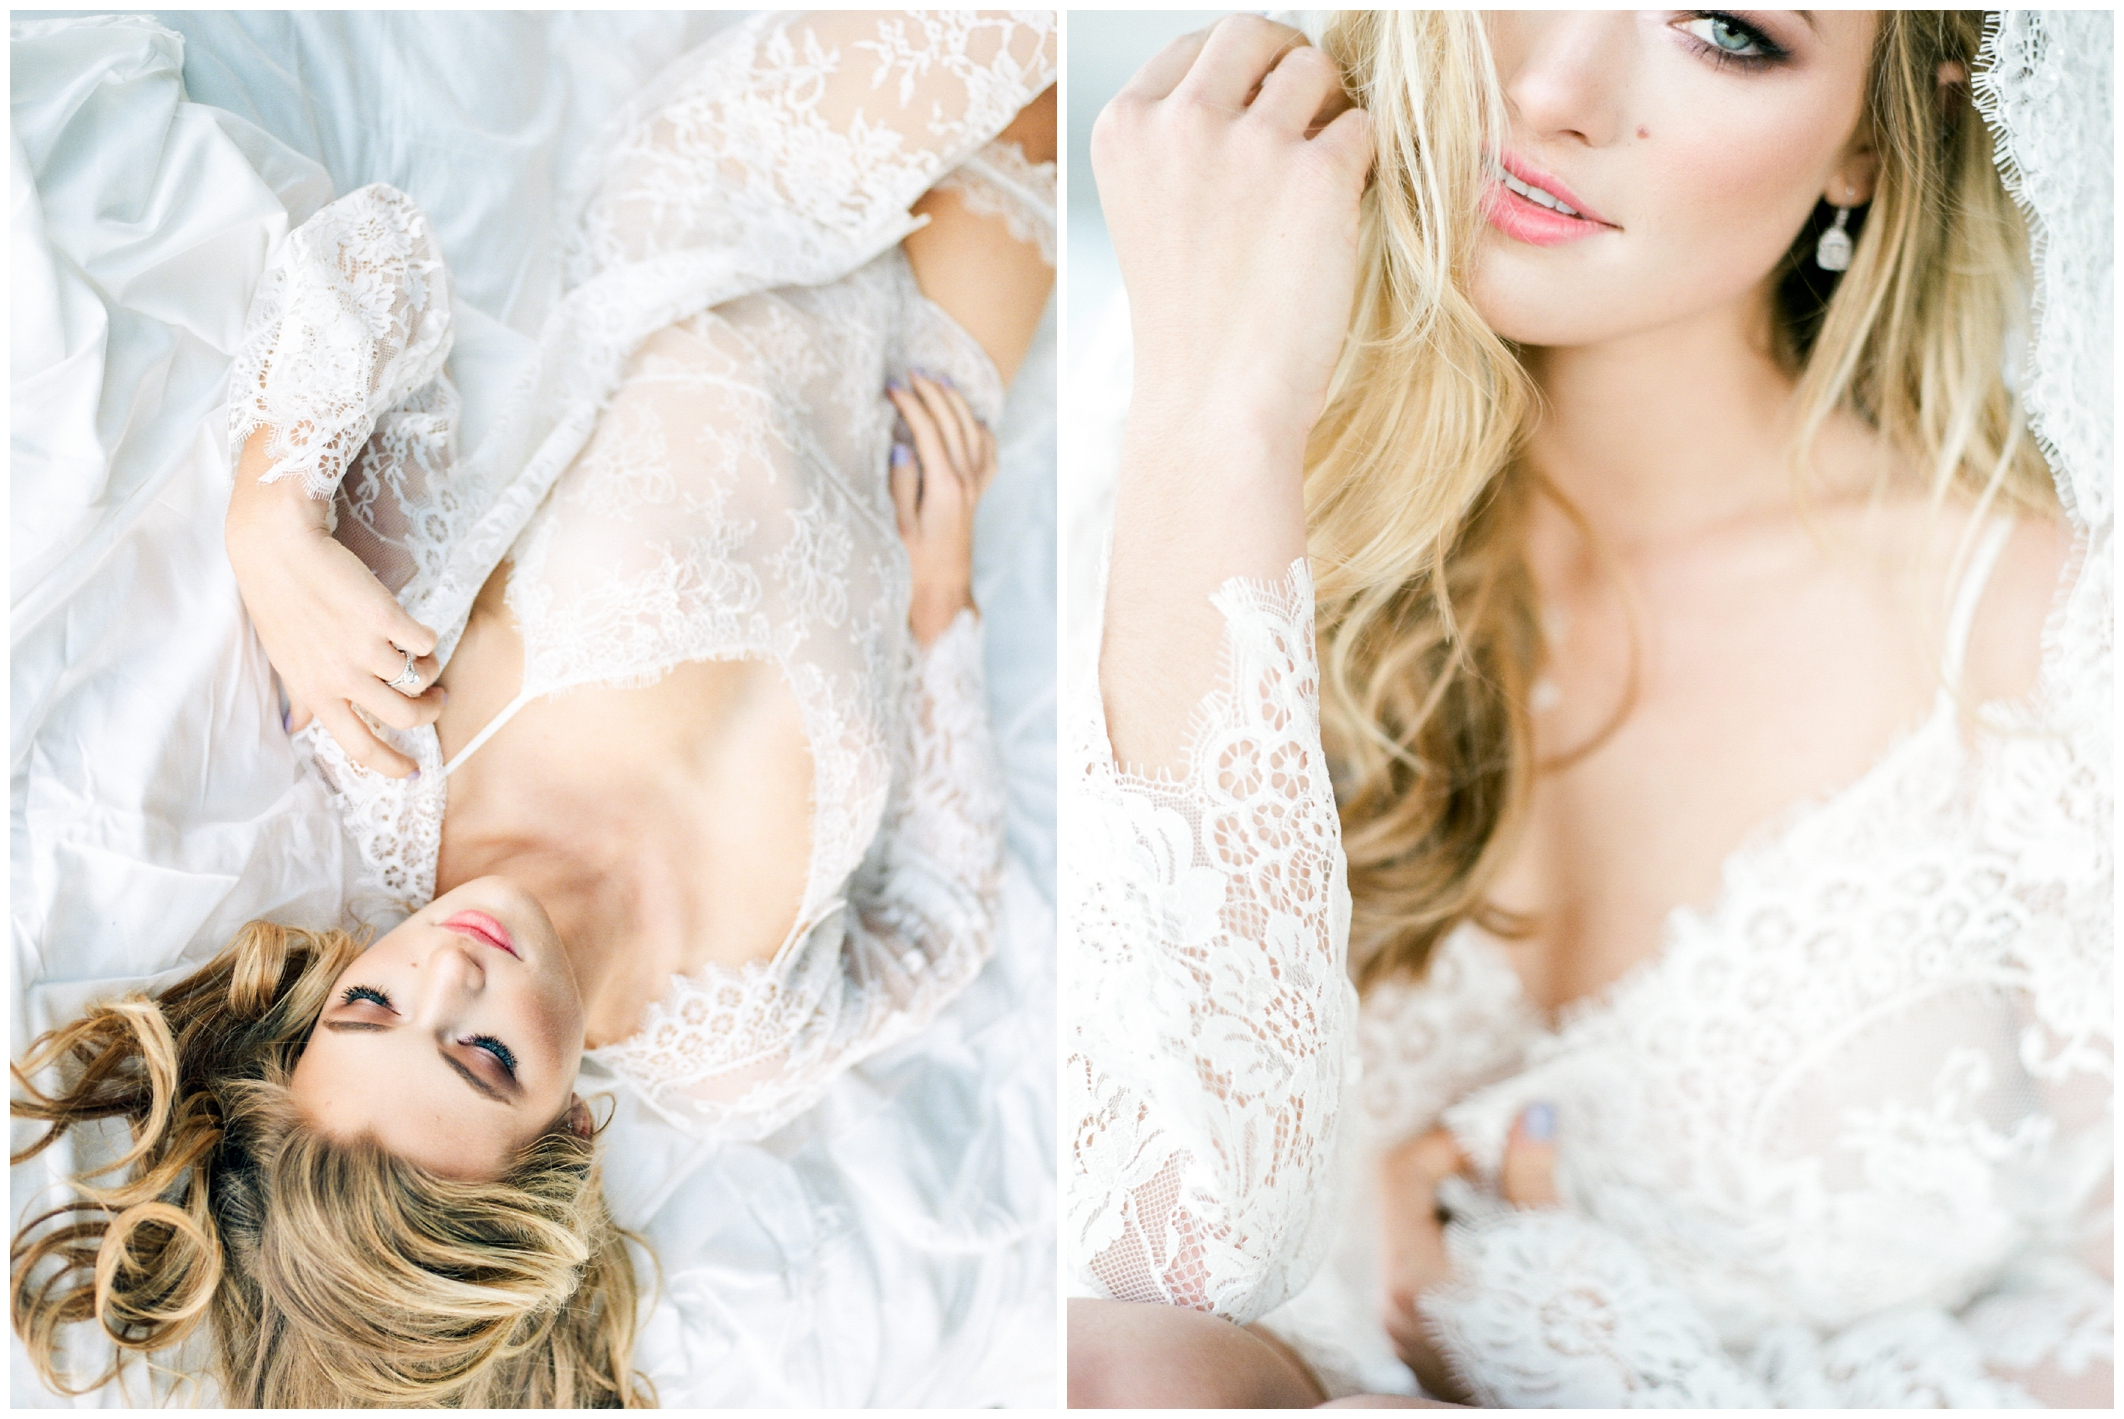 Boudoir Editorial at Haus 820 | Lakeland, Florida